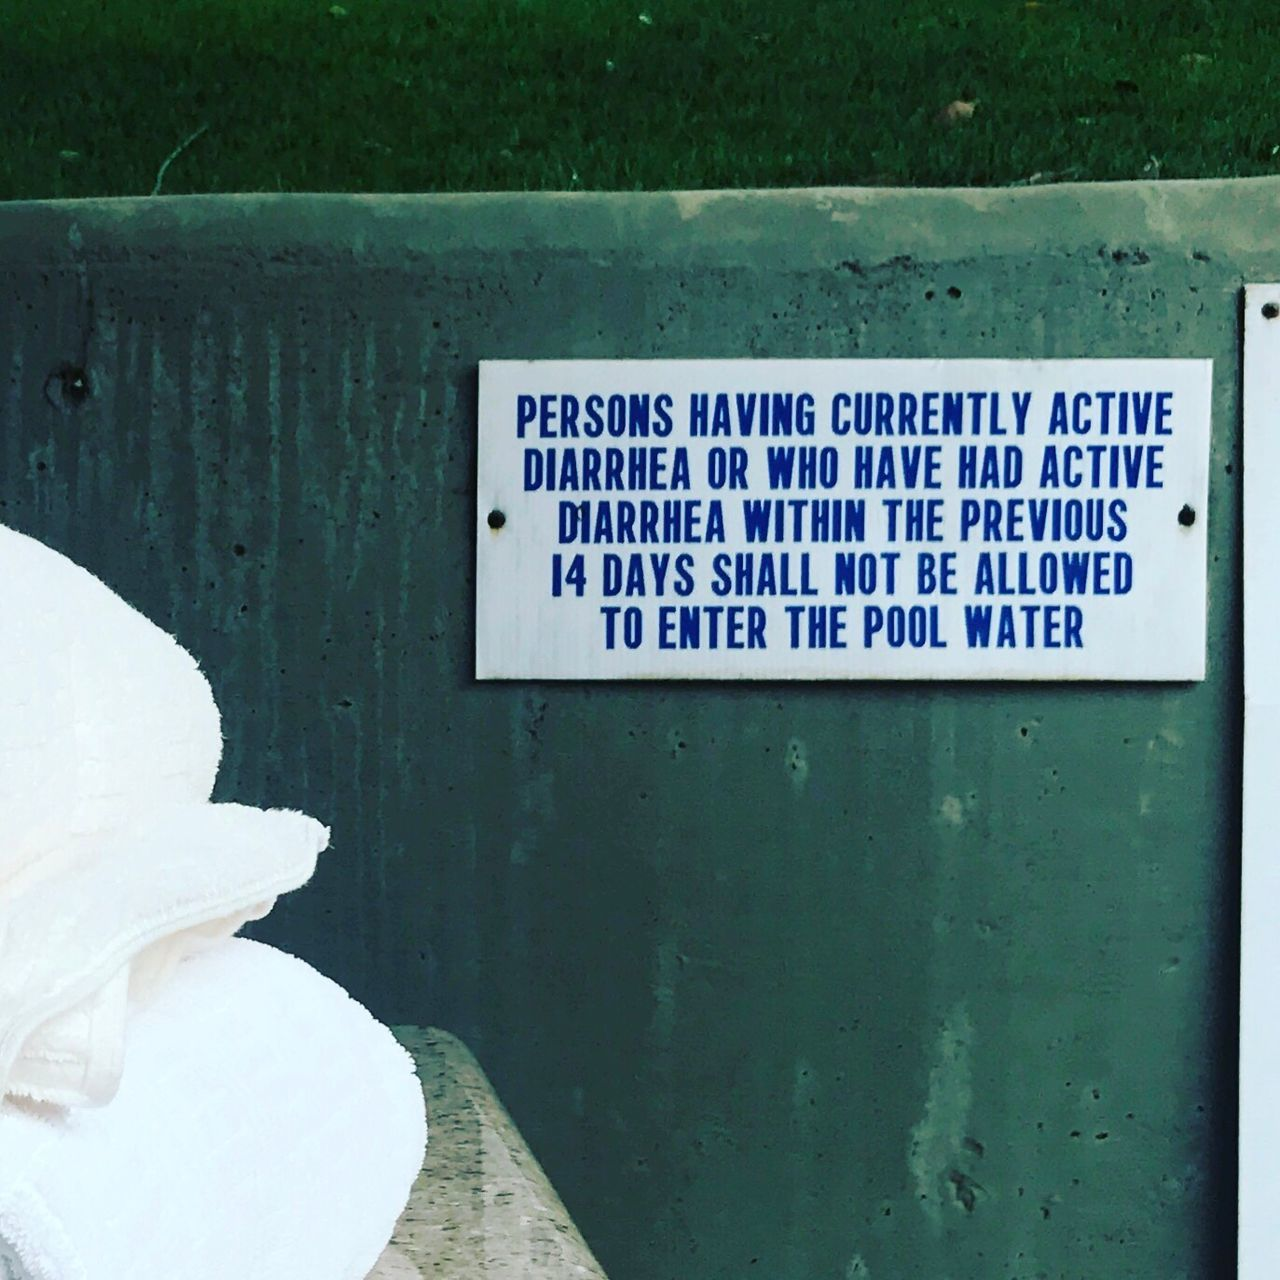 Code brown: My favorite sign at California pools // Day Text Outdoors Close-up No People Nature